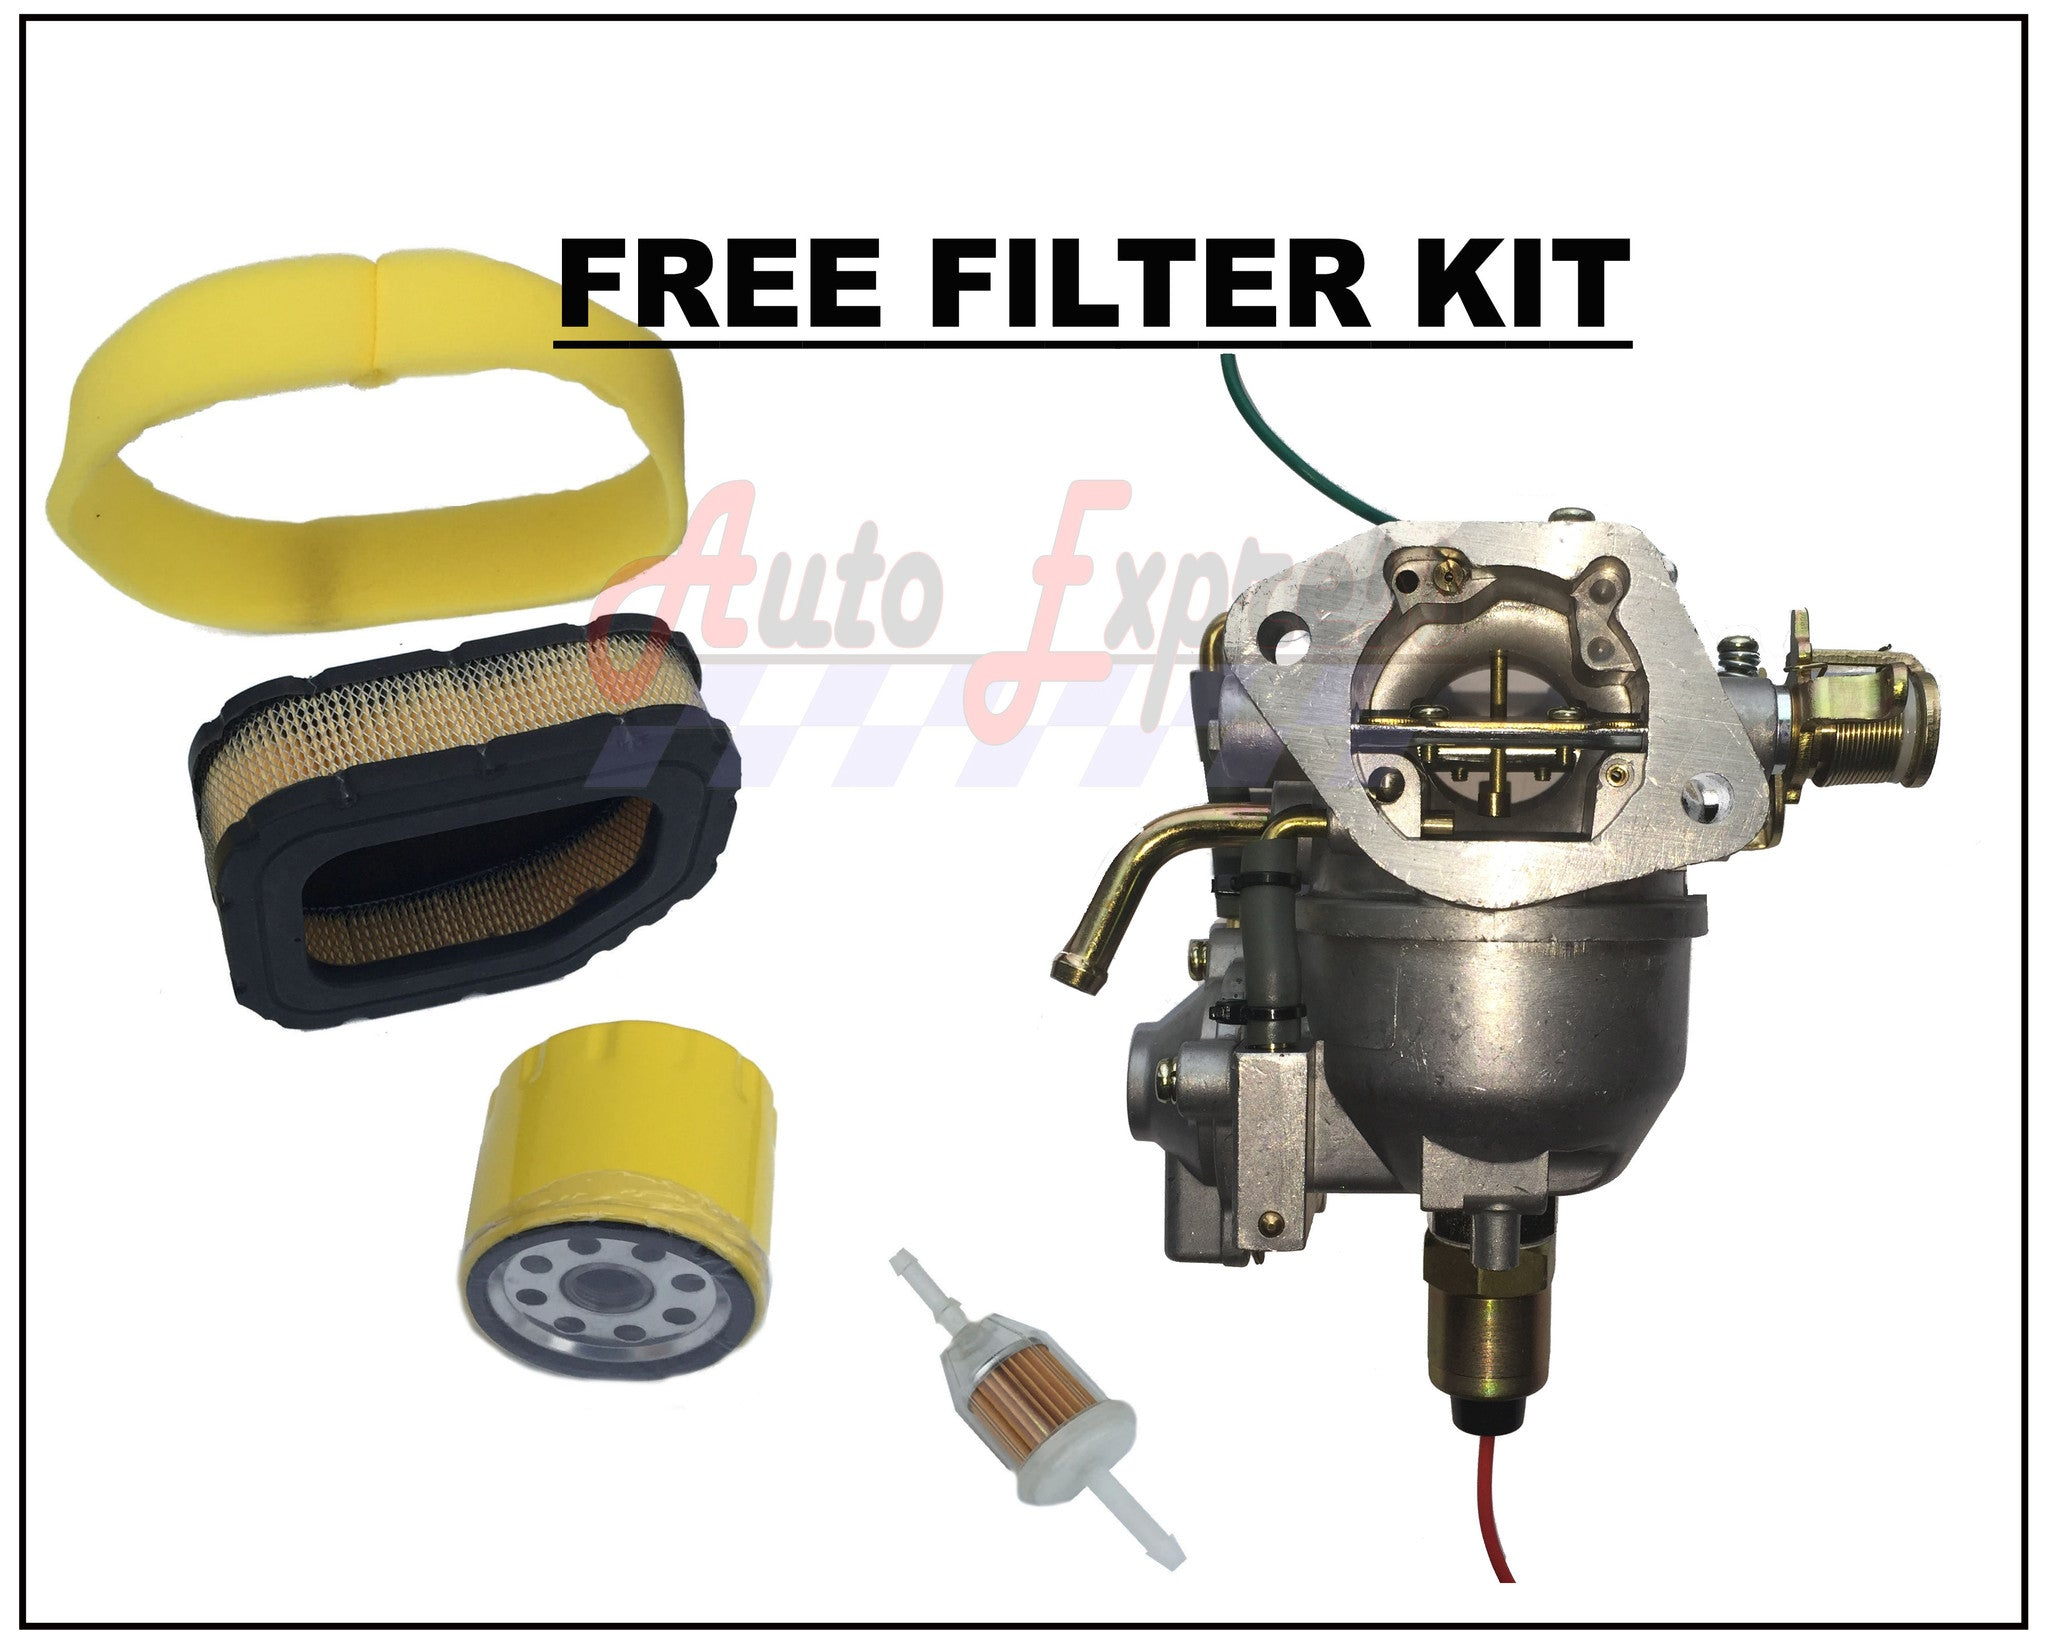 Carburetor for Kubota ZG20 ZG23 Nikki Carb Tune Up Kit Pump Filters - AE-Power